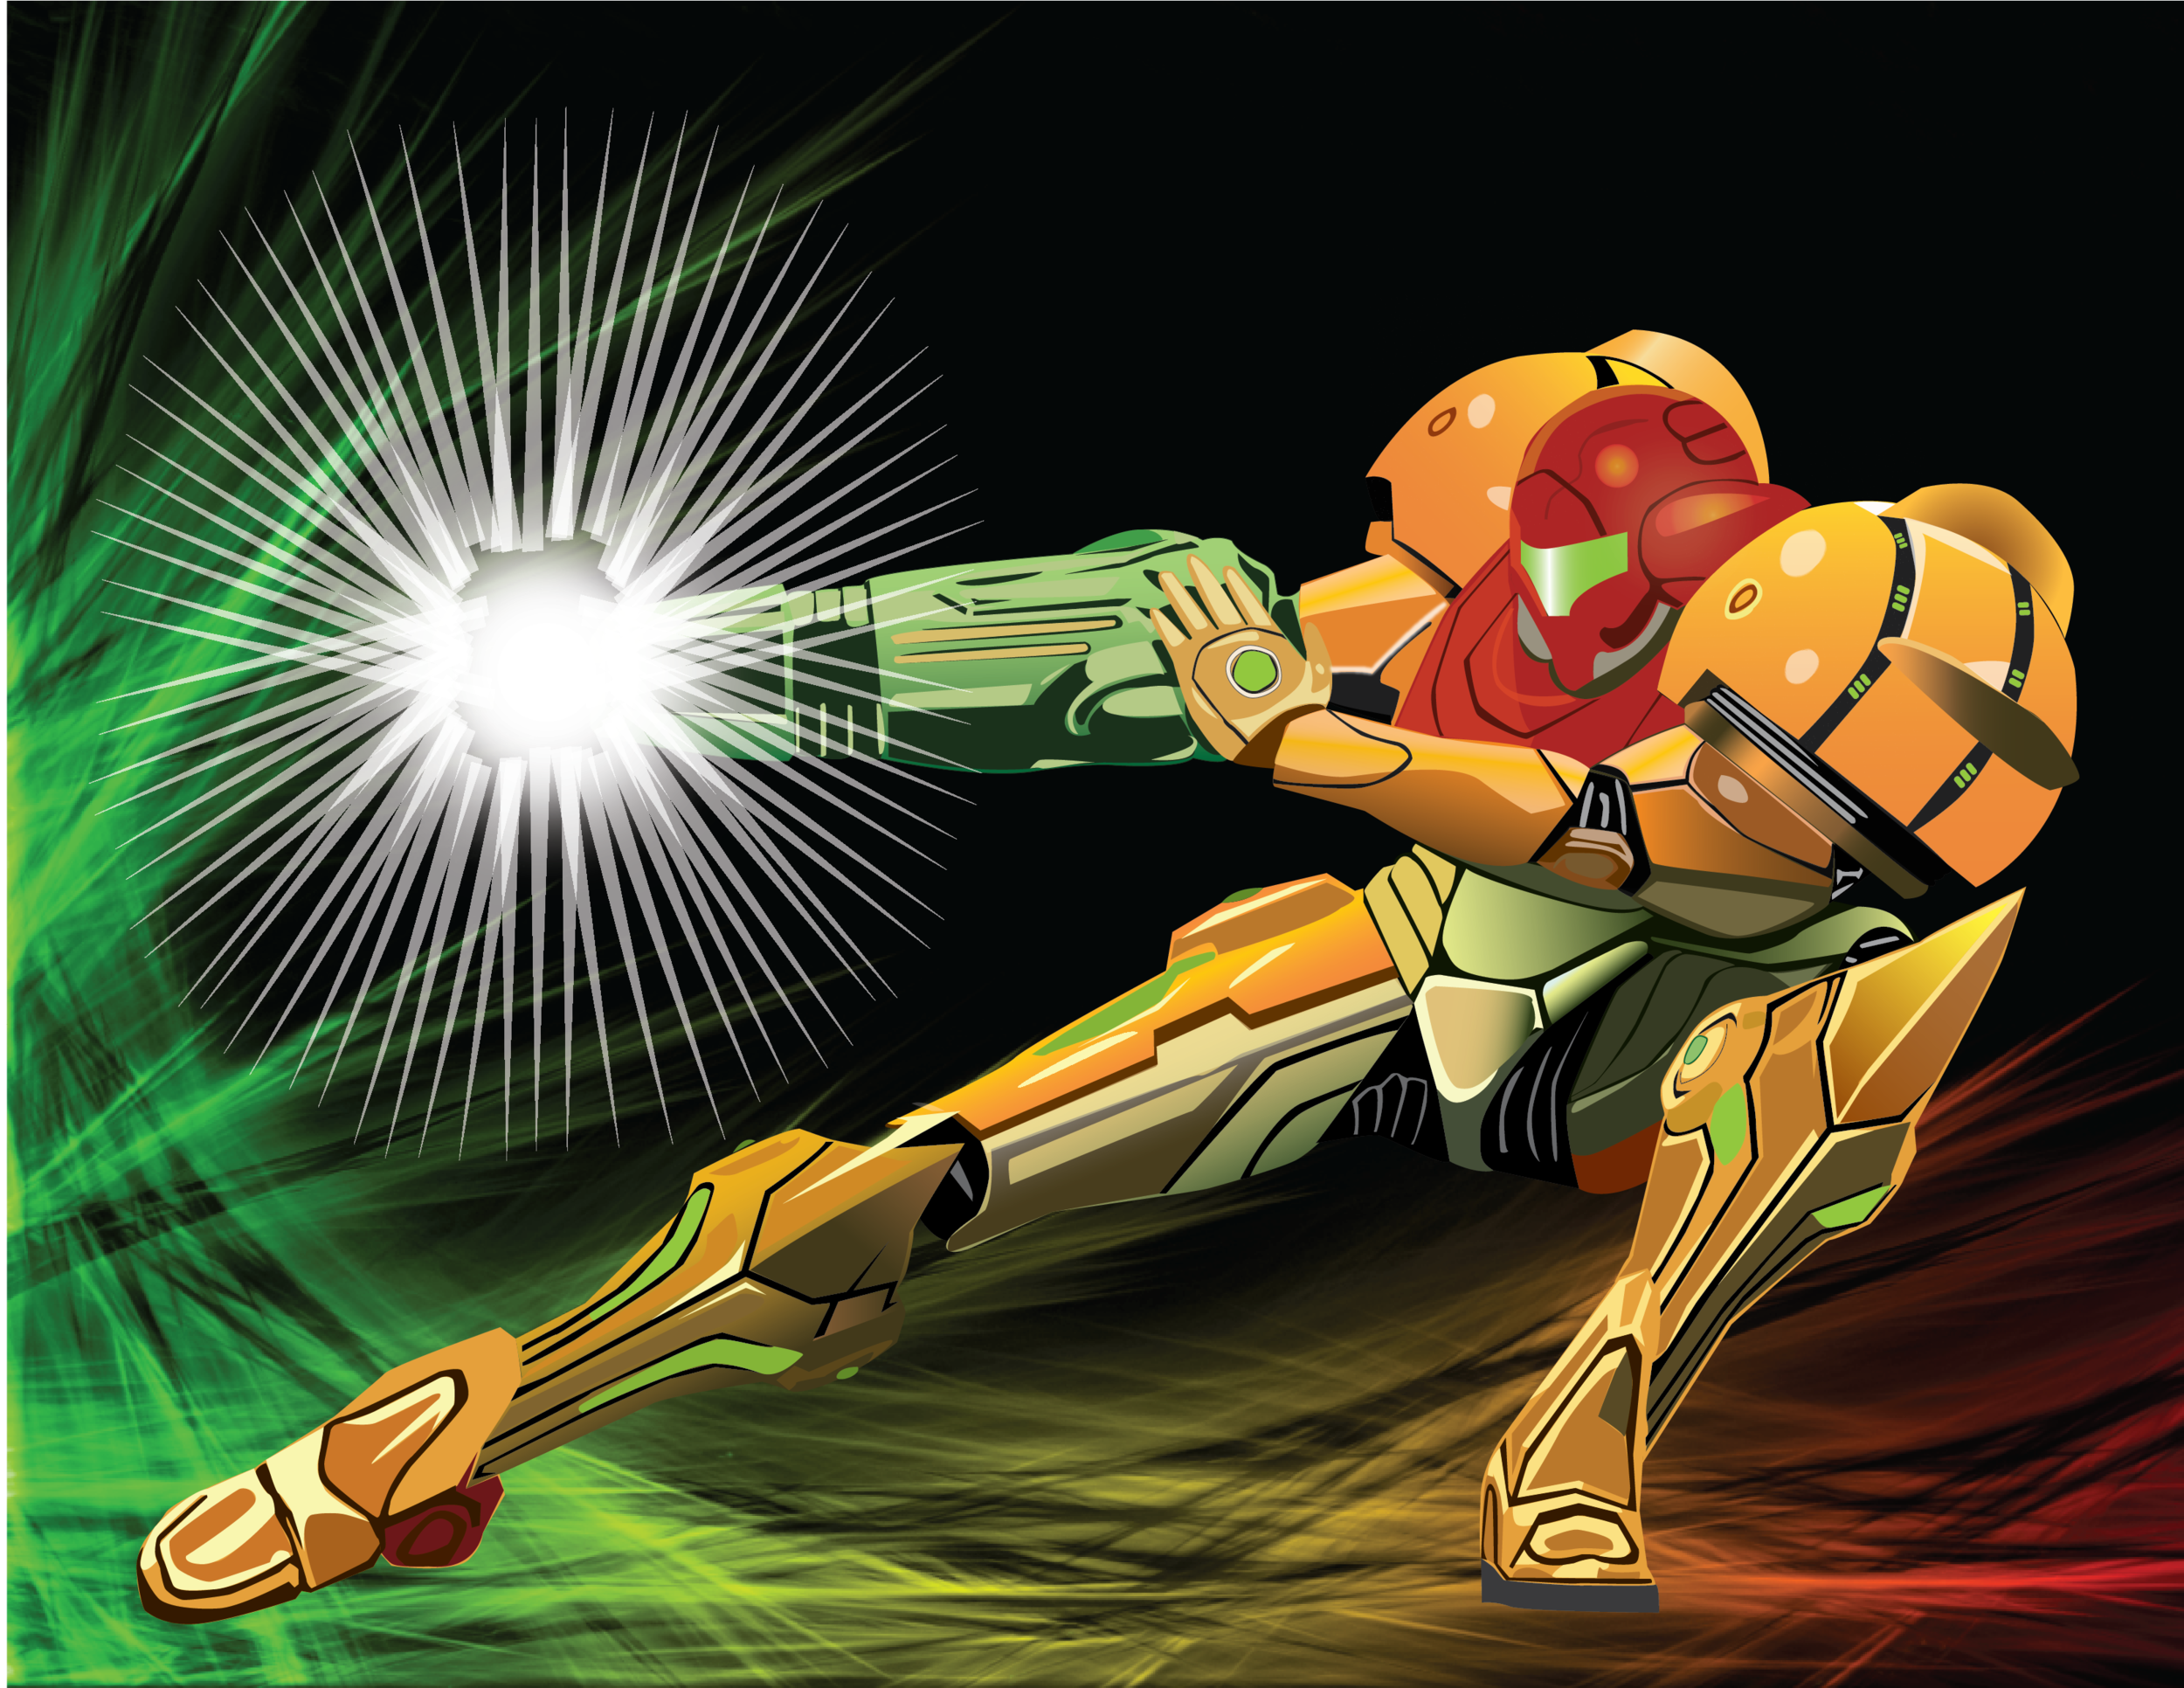 samus_rbp_final.png